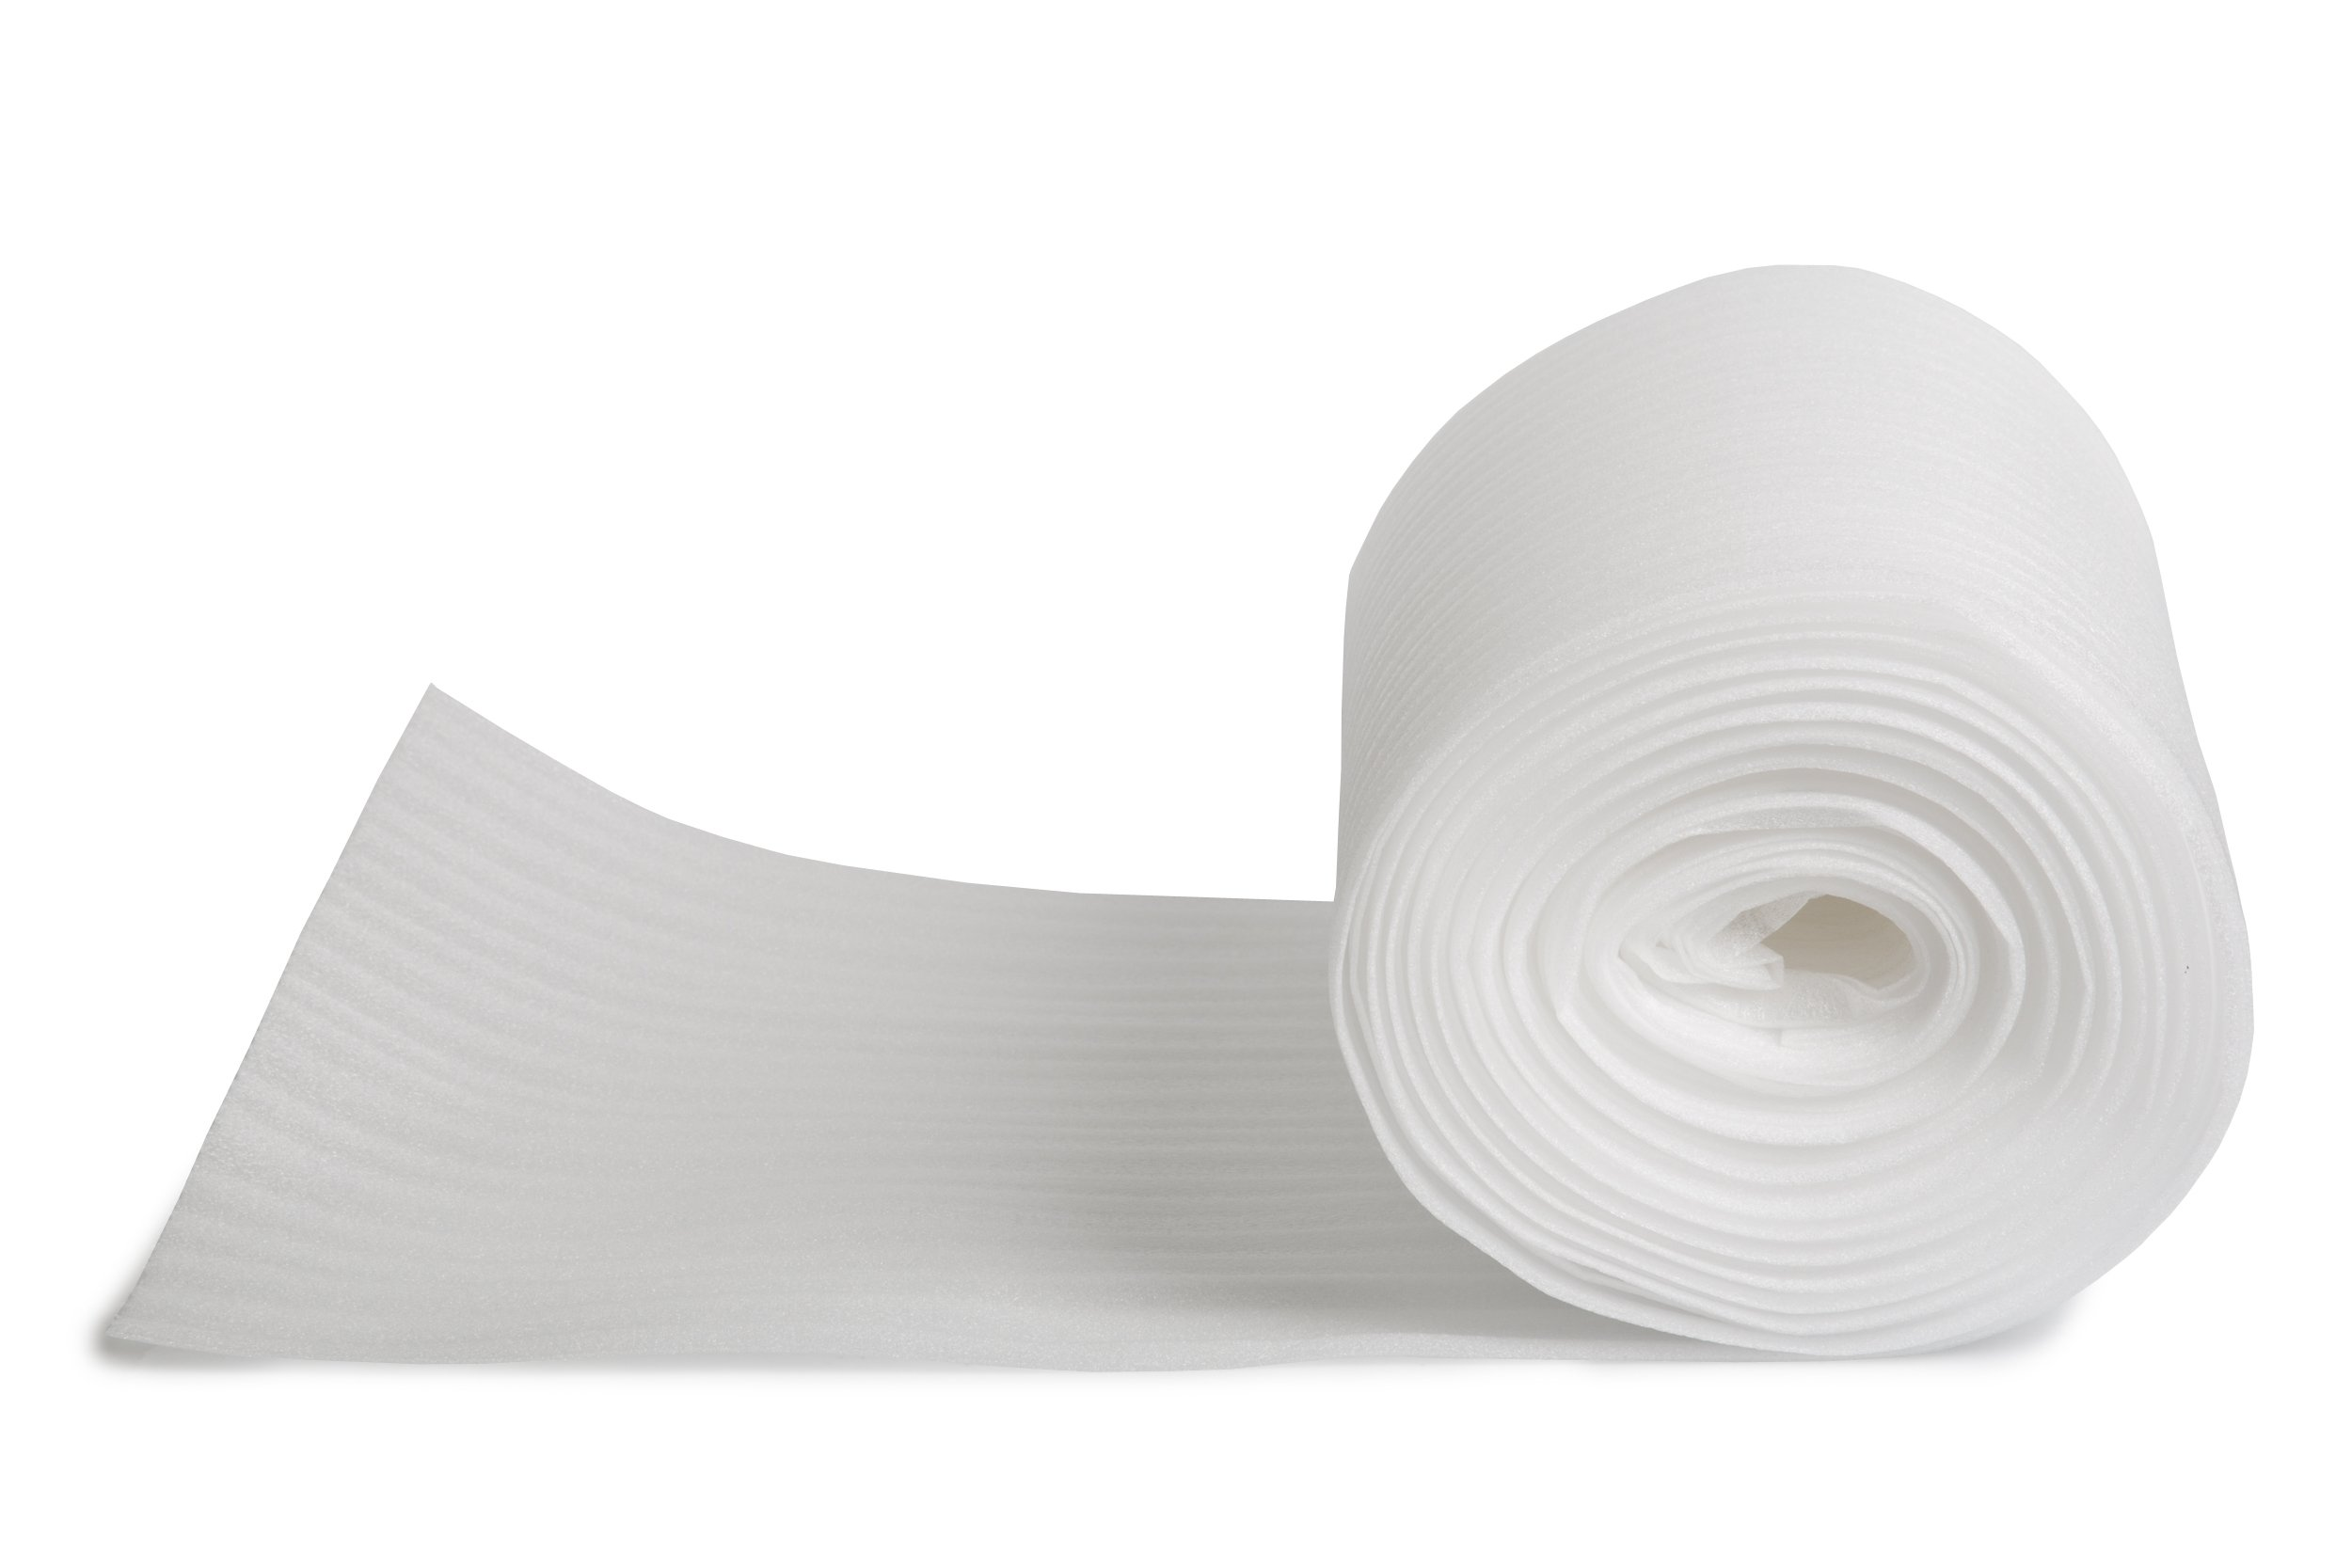 Packing Materials Foam Roll 12'' Wide x 70' Long X 1/16 Thick • Perforated Every 12'' • Great for all shipping, mailing, packing and moving needs